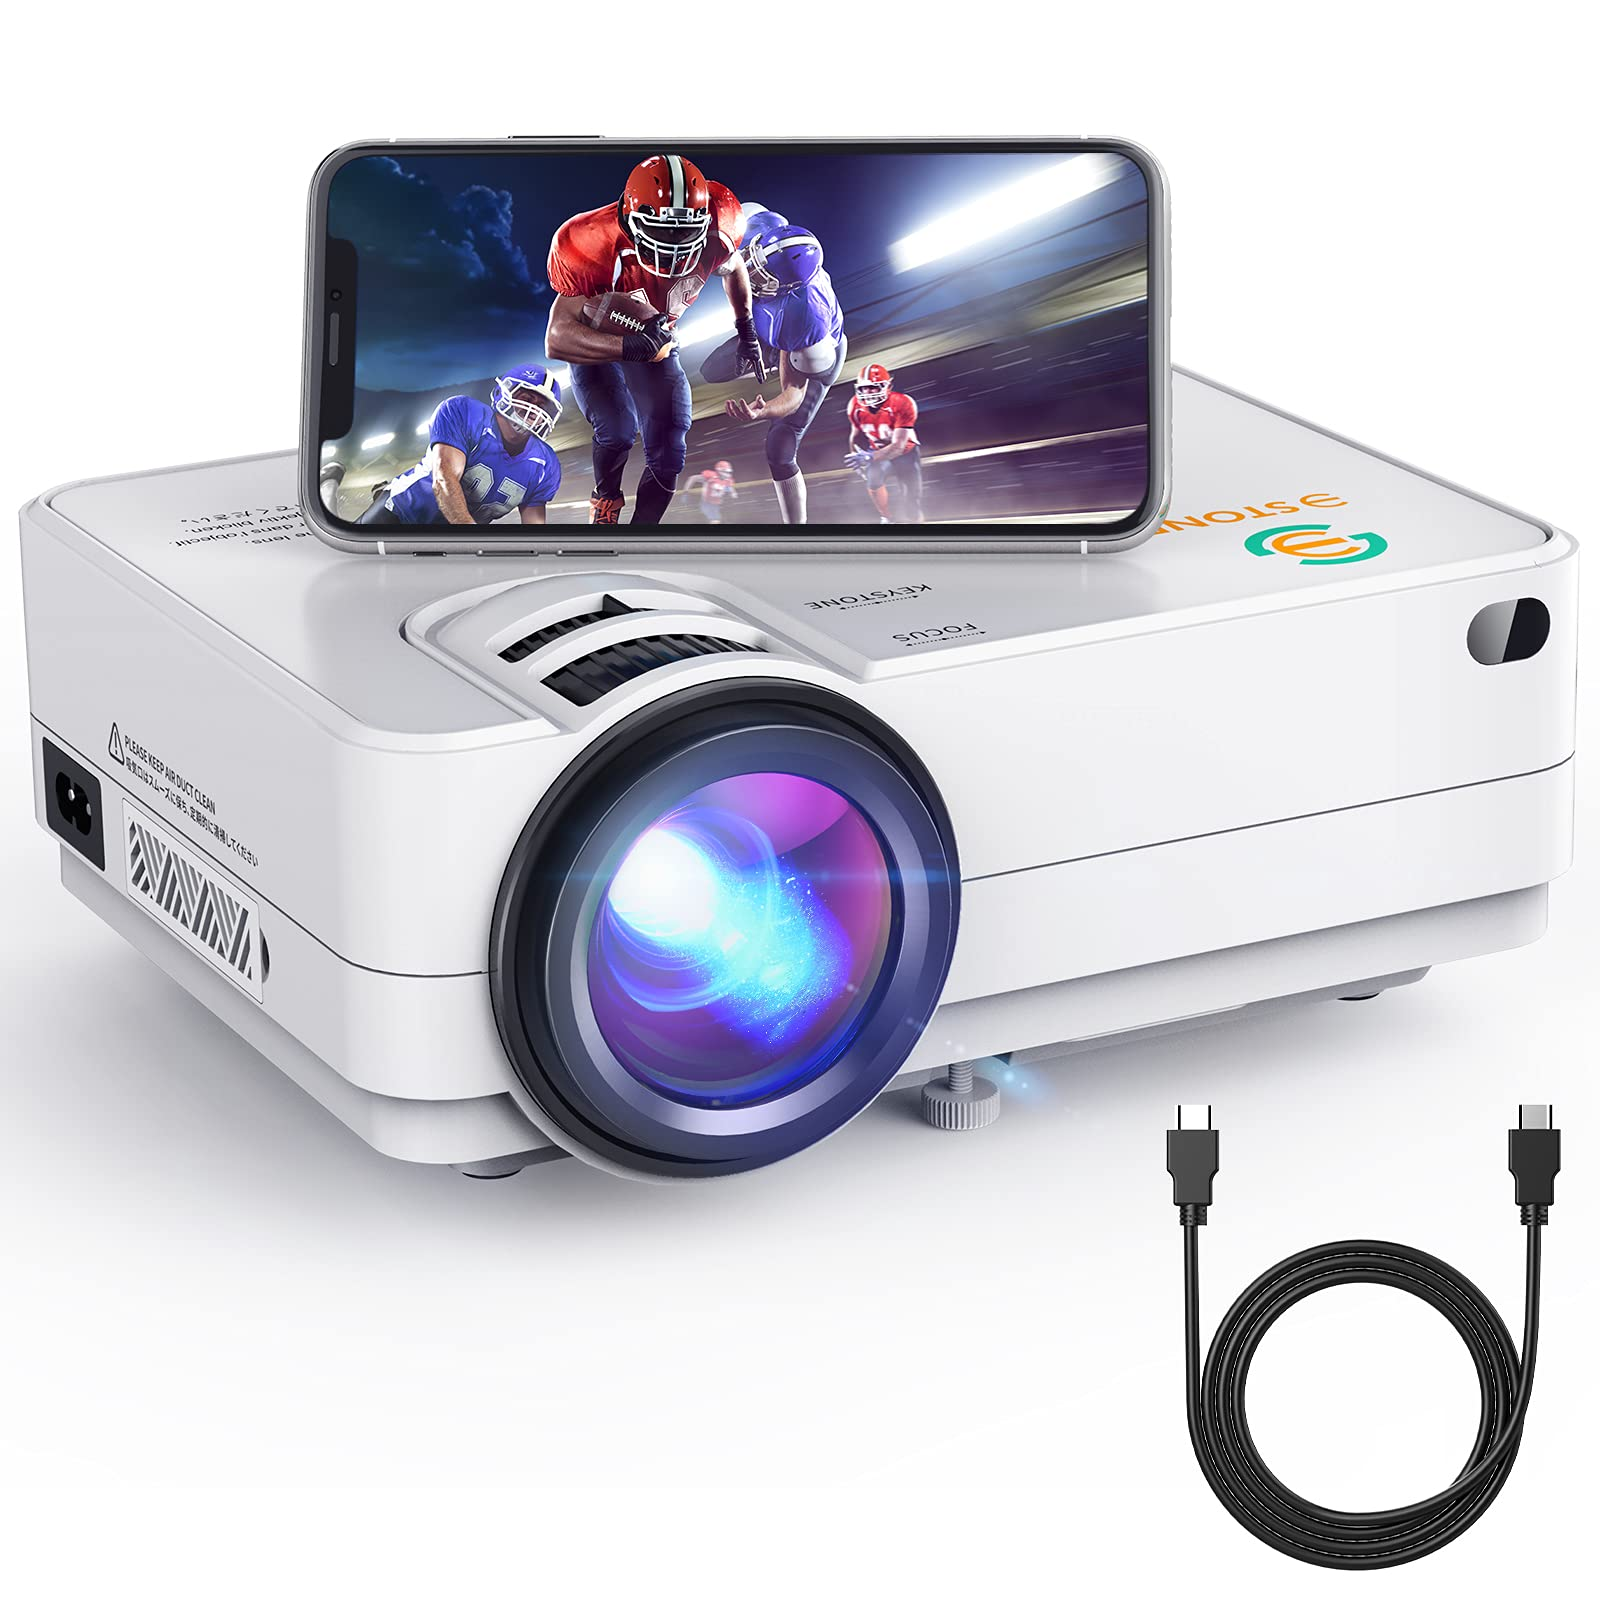 Wi-Fi Mini Projector 3Stone A5 4500 Lux Portable Movie Projector with 1080P